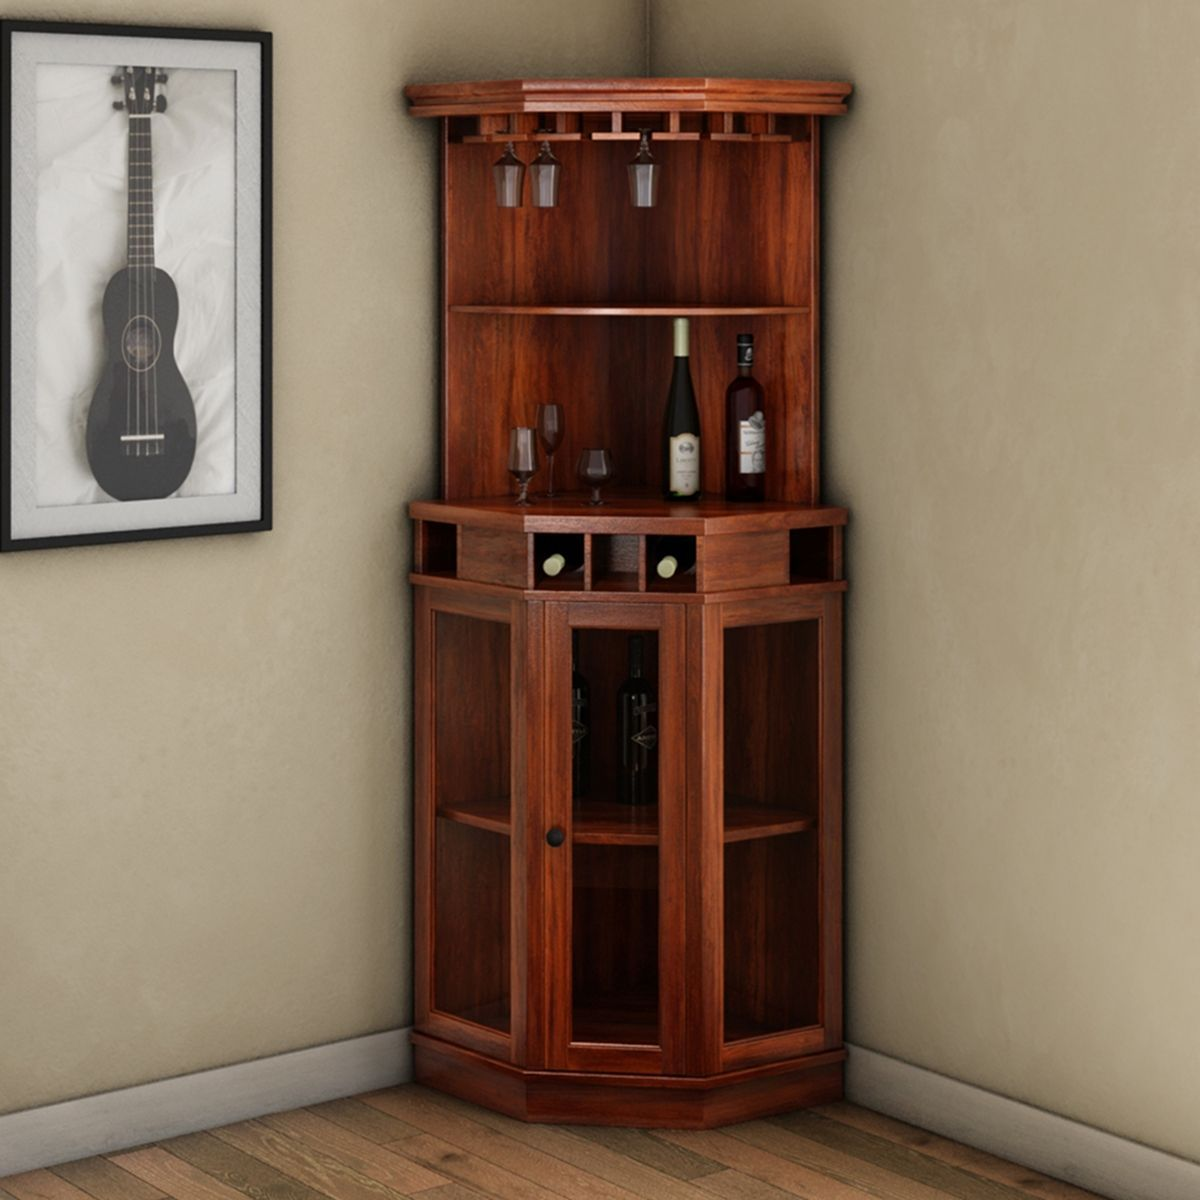 Marvelous 25 Gorgeous Small Corner Wine Cabinet Ideas For Home Look More Beautiful Http Decora Corner Liquor Cabinet Corner Wine Cabinet Glass Cabinet Doors